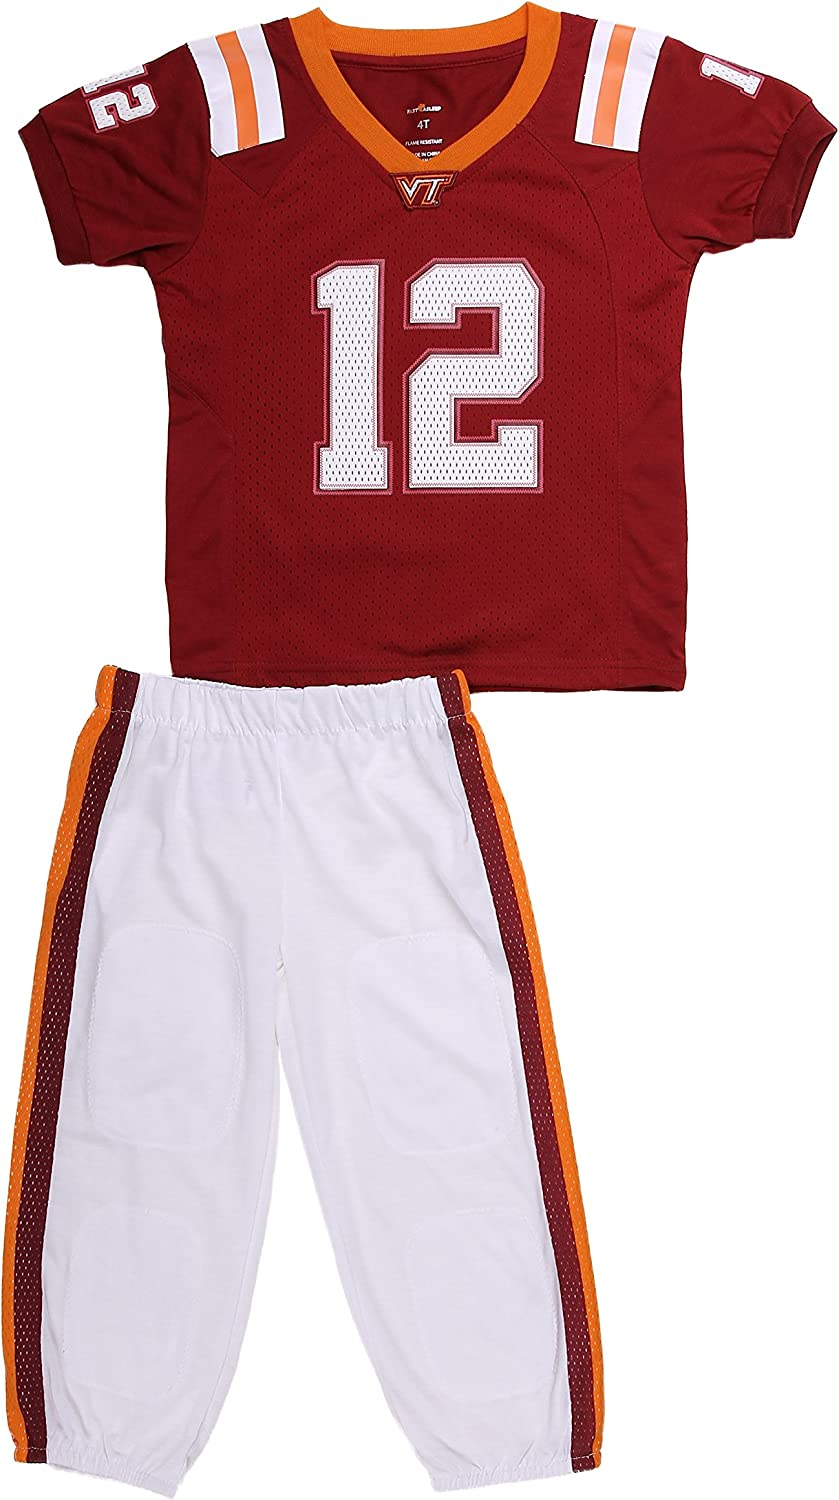 Fast Asleep Virginia Tech Uniform Pajama Set New 3T